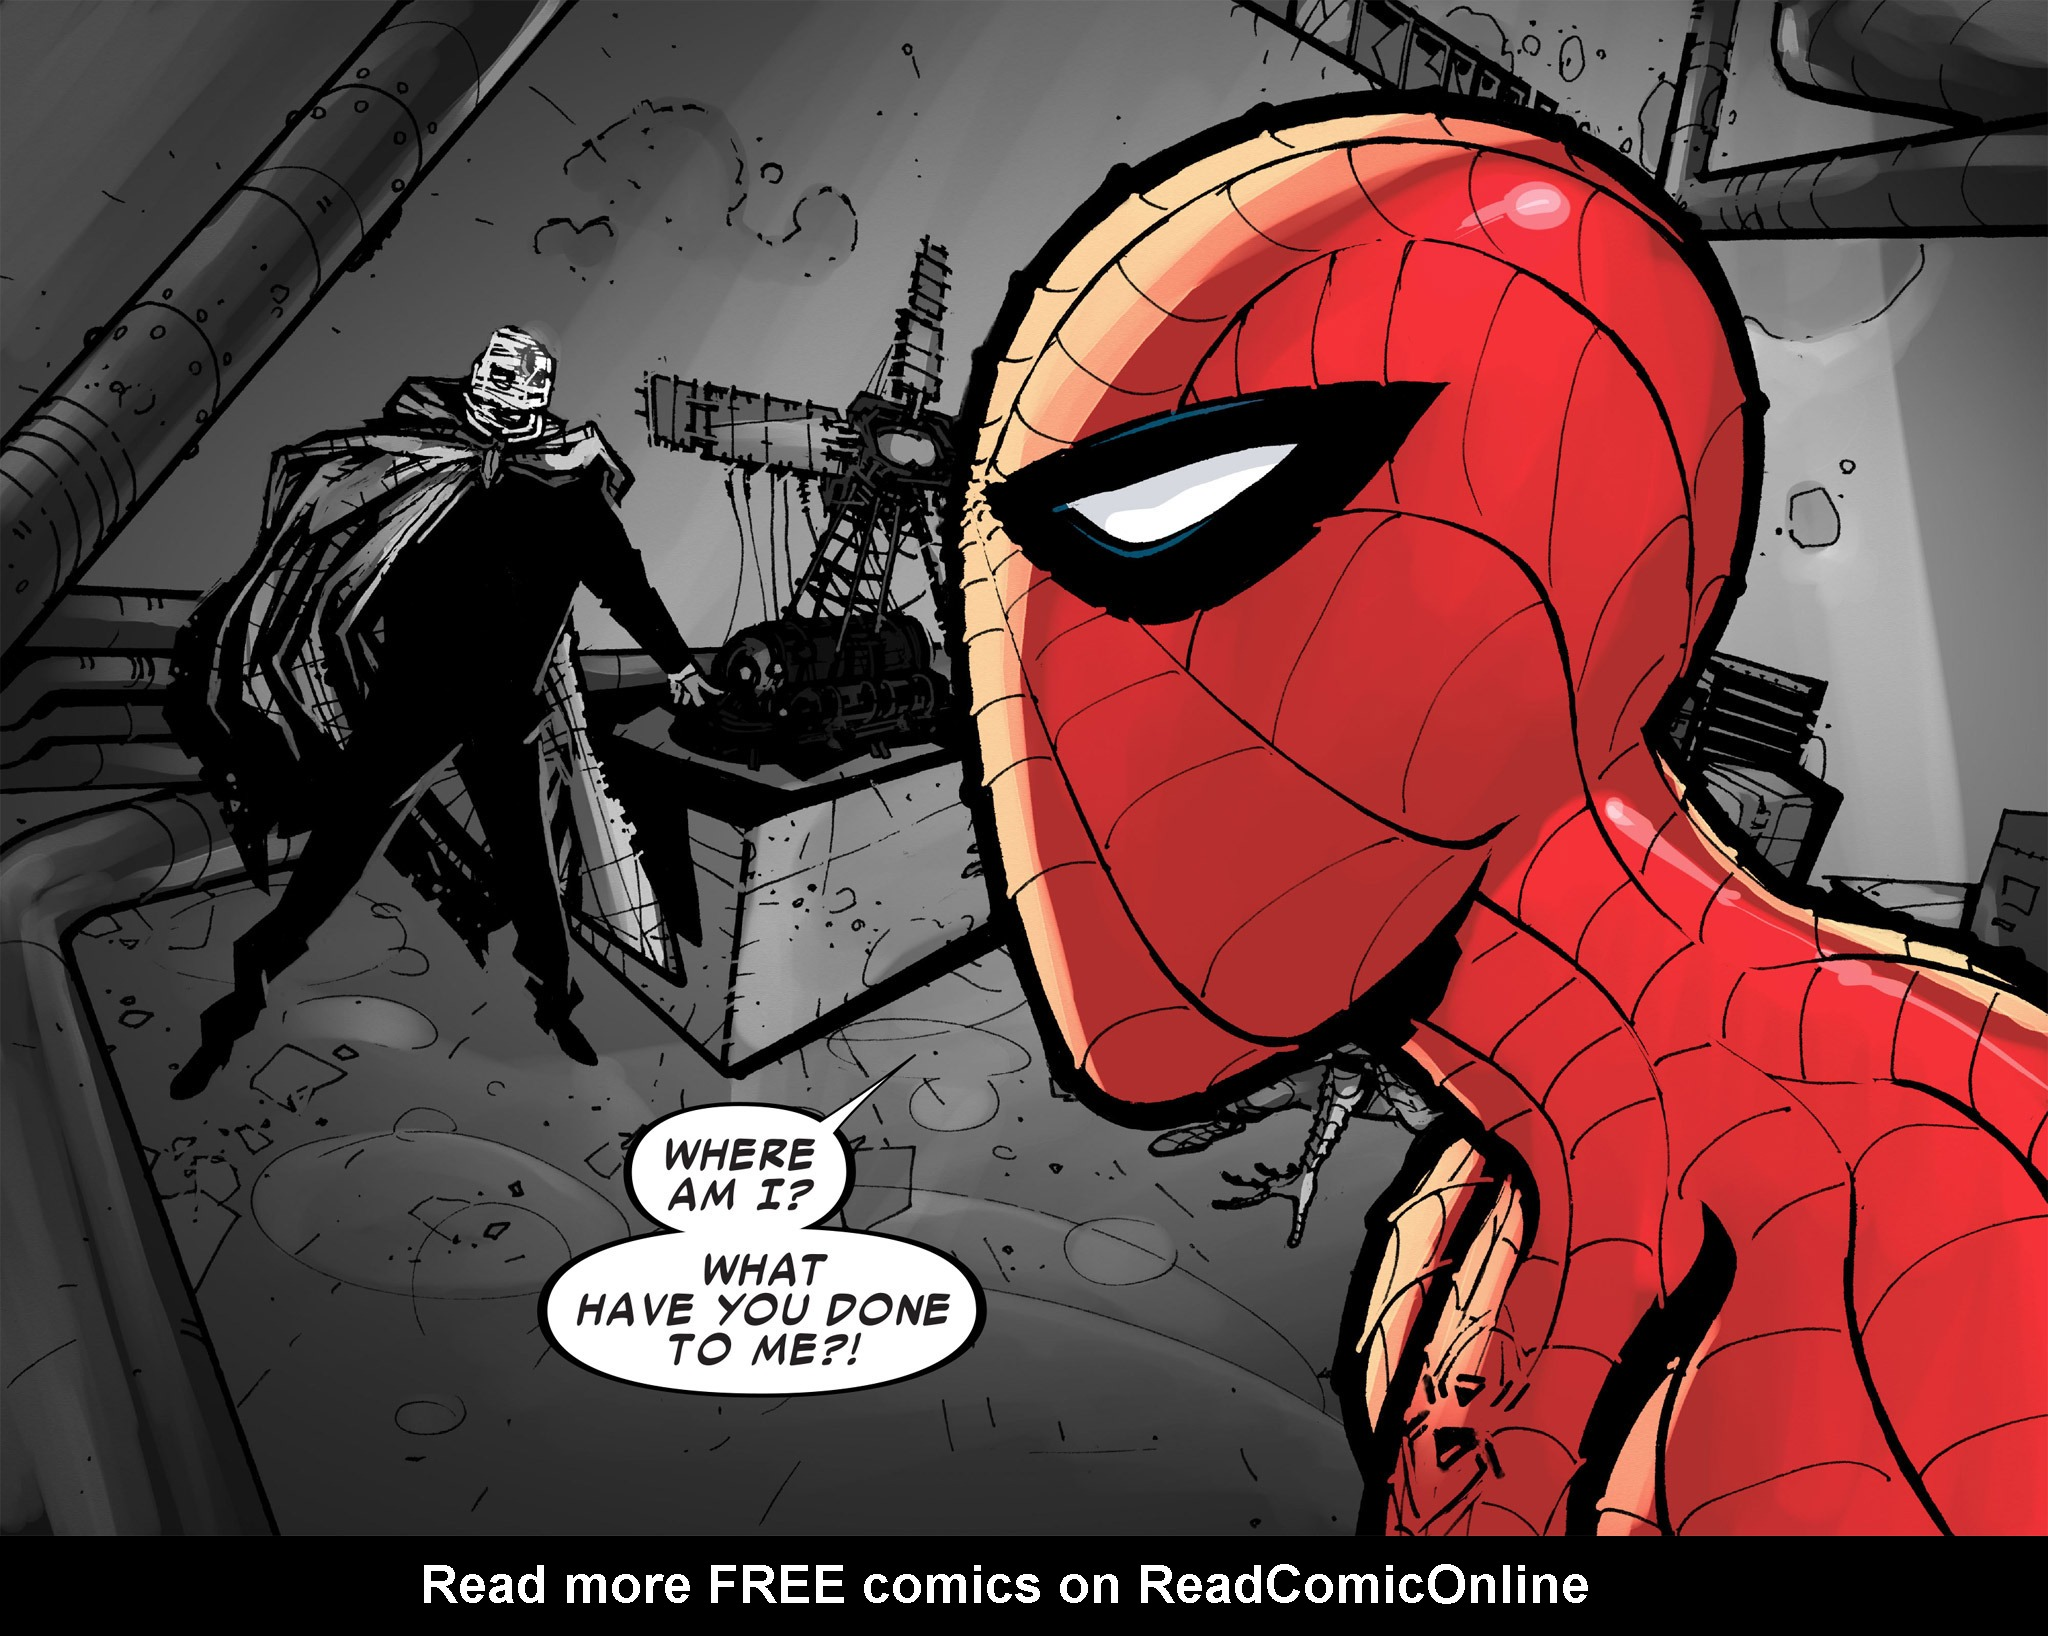 Read online Amazing Spider-Man: Who Am I? comic -  Issue # Full (Part 2) - 237